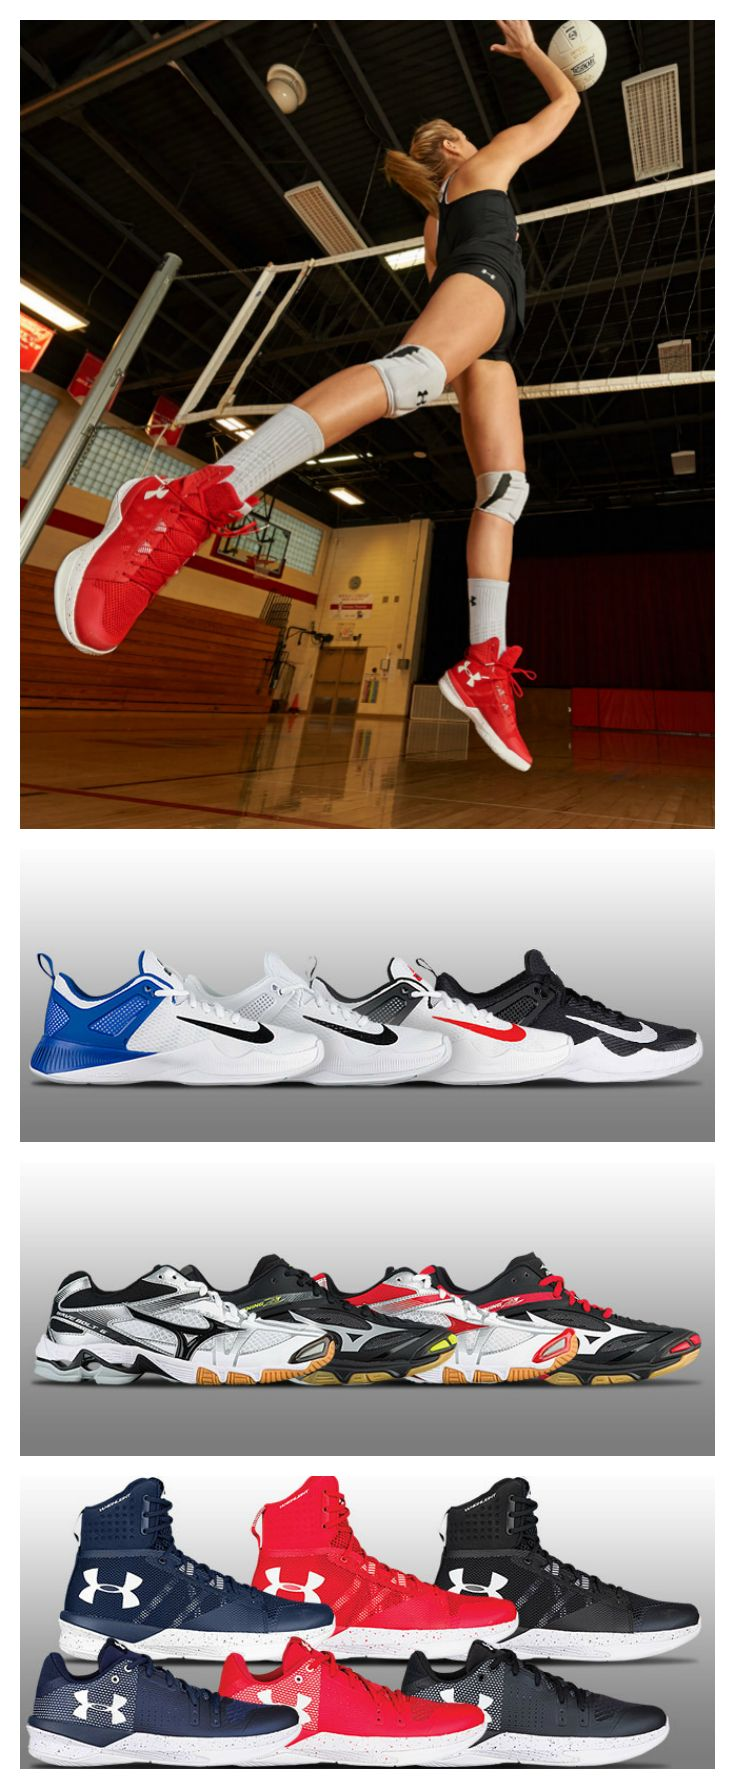 Check out our guide to the best volleyball shoes of 2017.